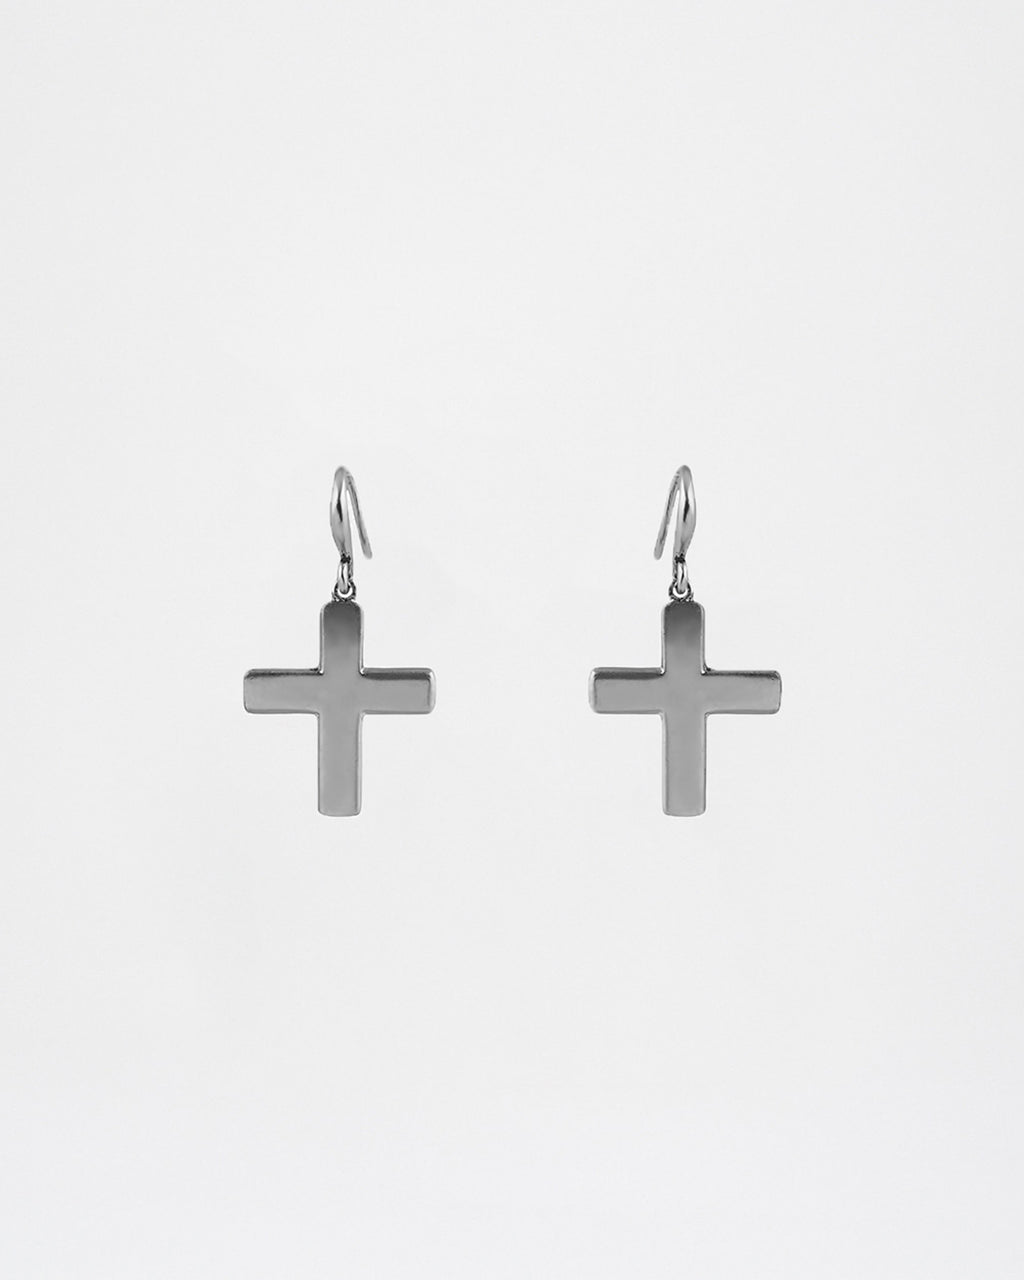 NM01431 - LARGE SOFT CROSS EARRINGS - accessories - jewelry - GOTHIC STYLE CROSSES ARE BEAUTIFULLY CRAFTED. These fashion jewelry earrings are secured with fishhook backs.